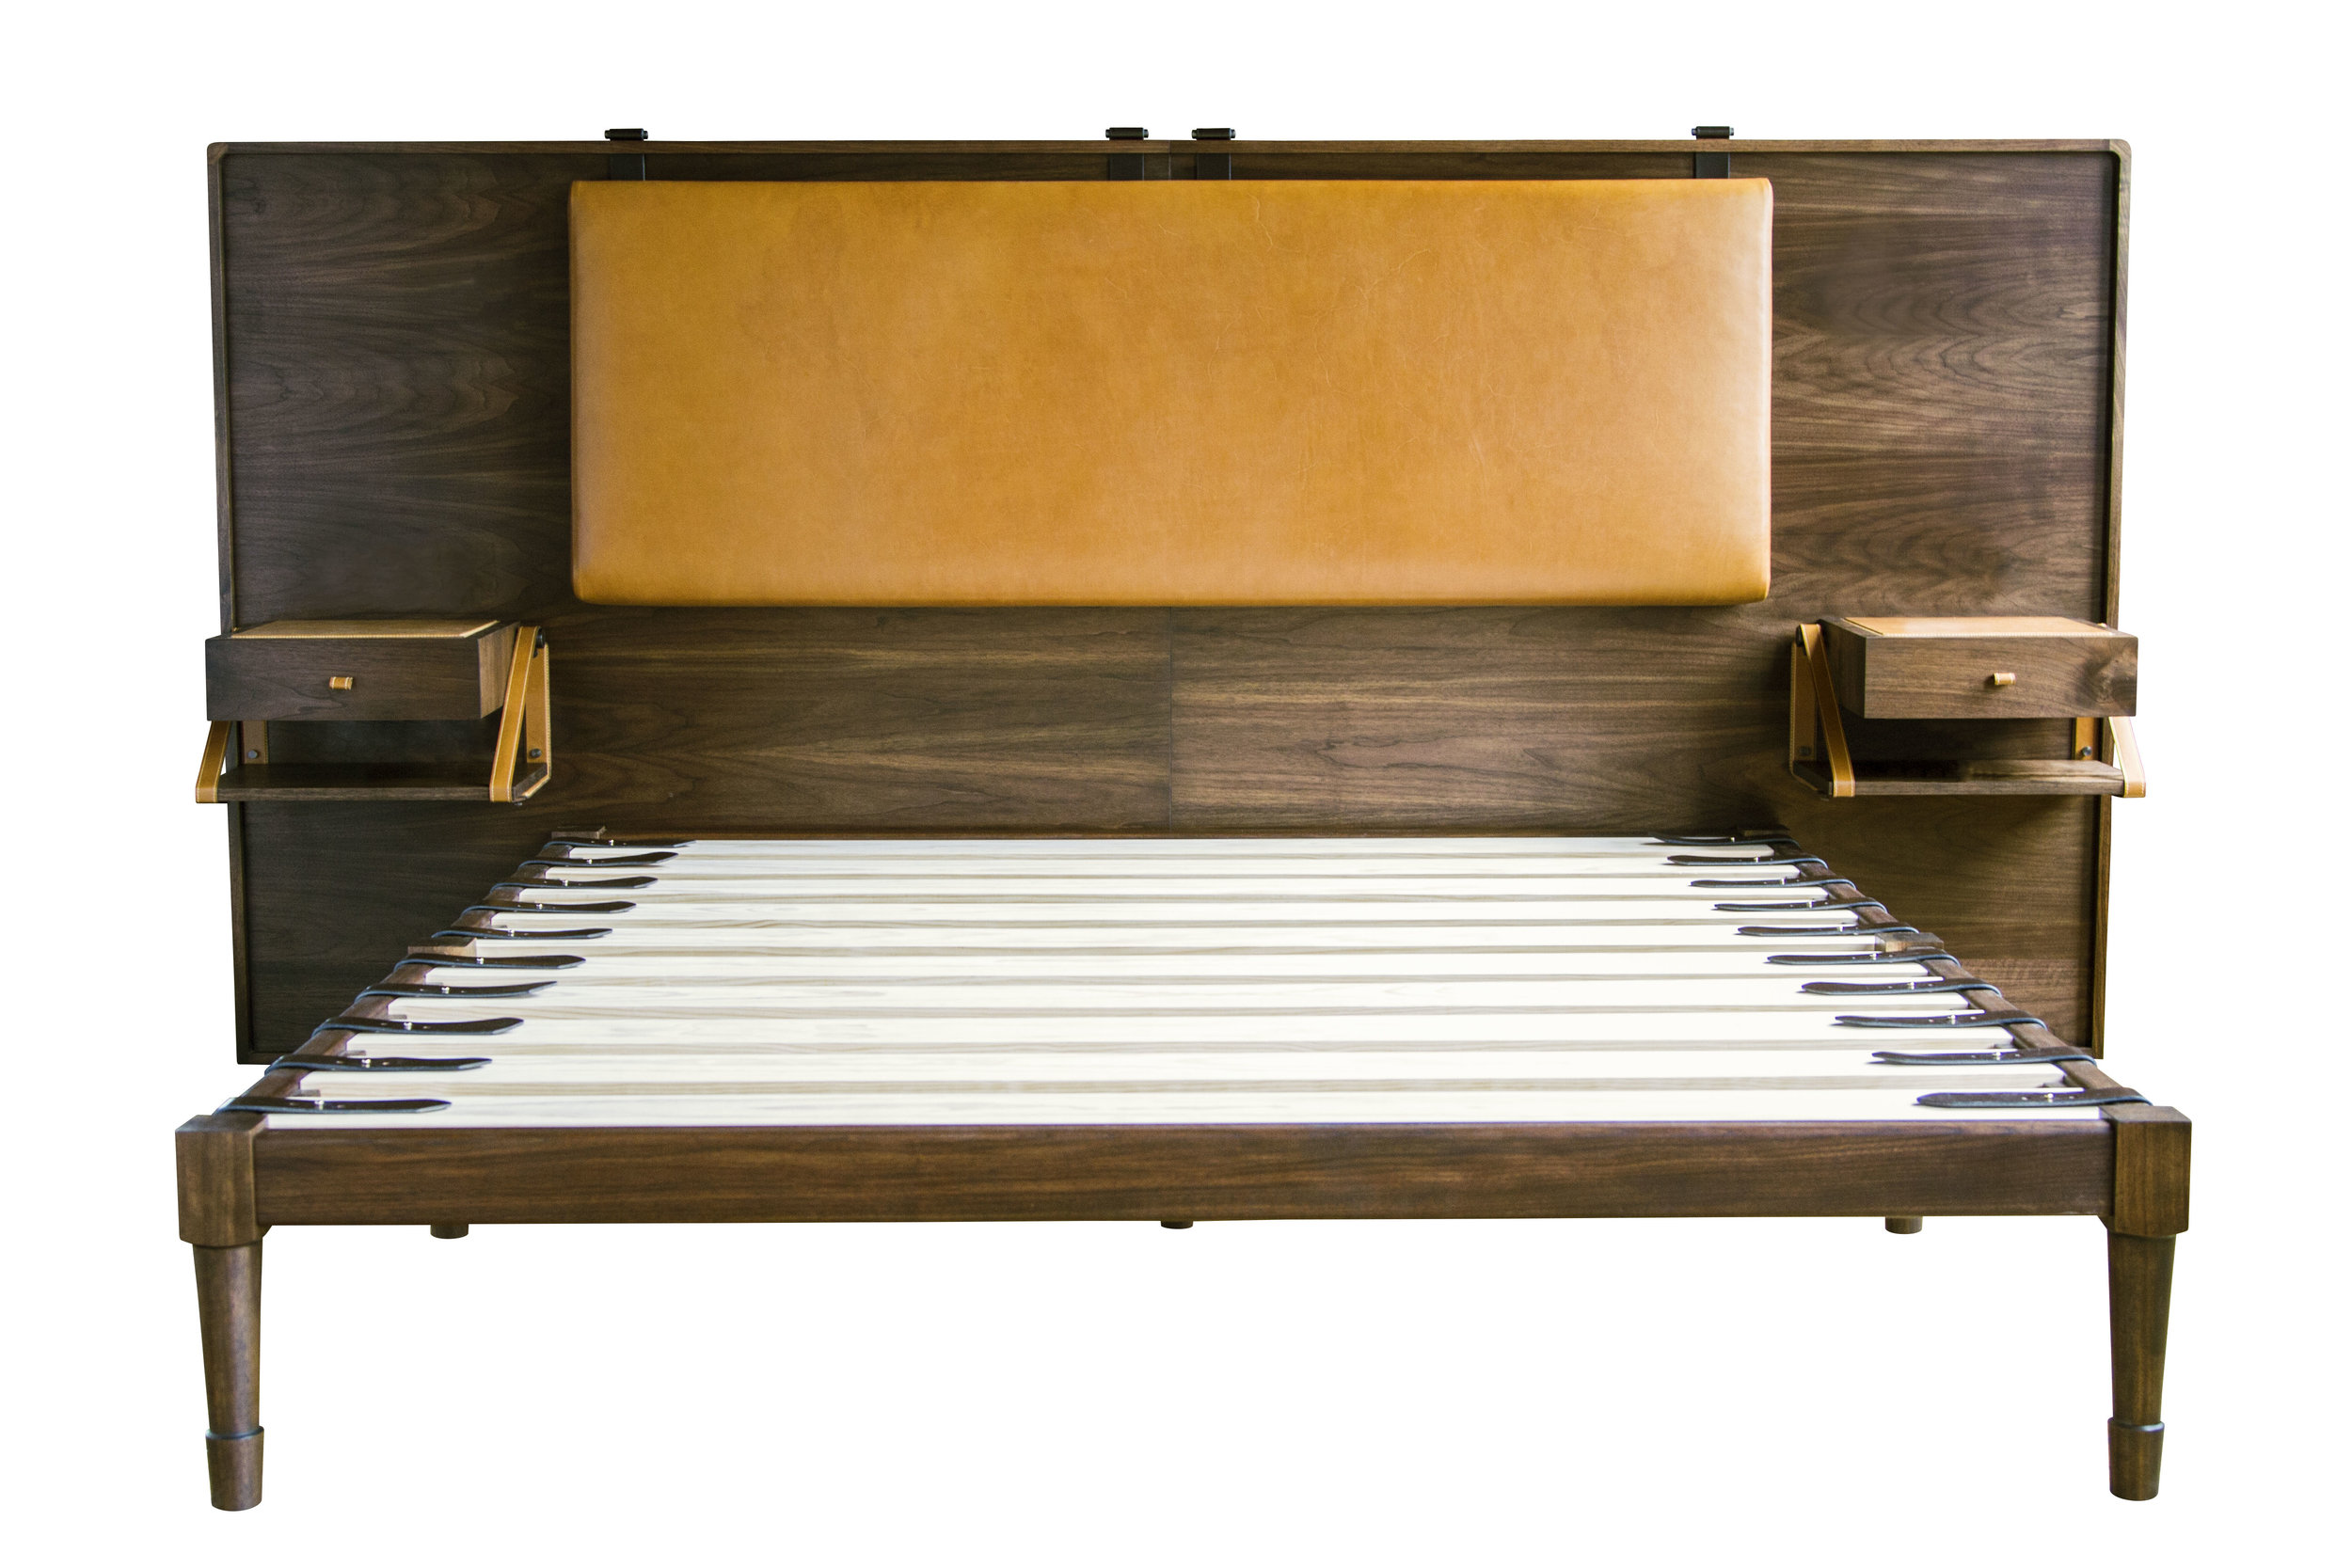 CA King Jasper Bed with the Marlton Headboard